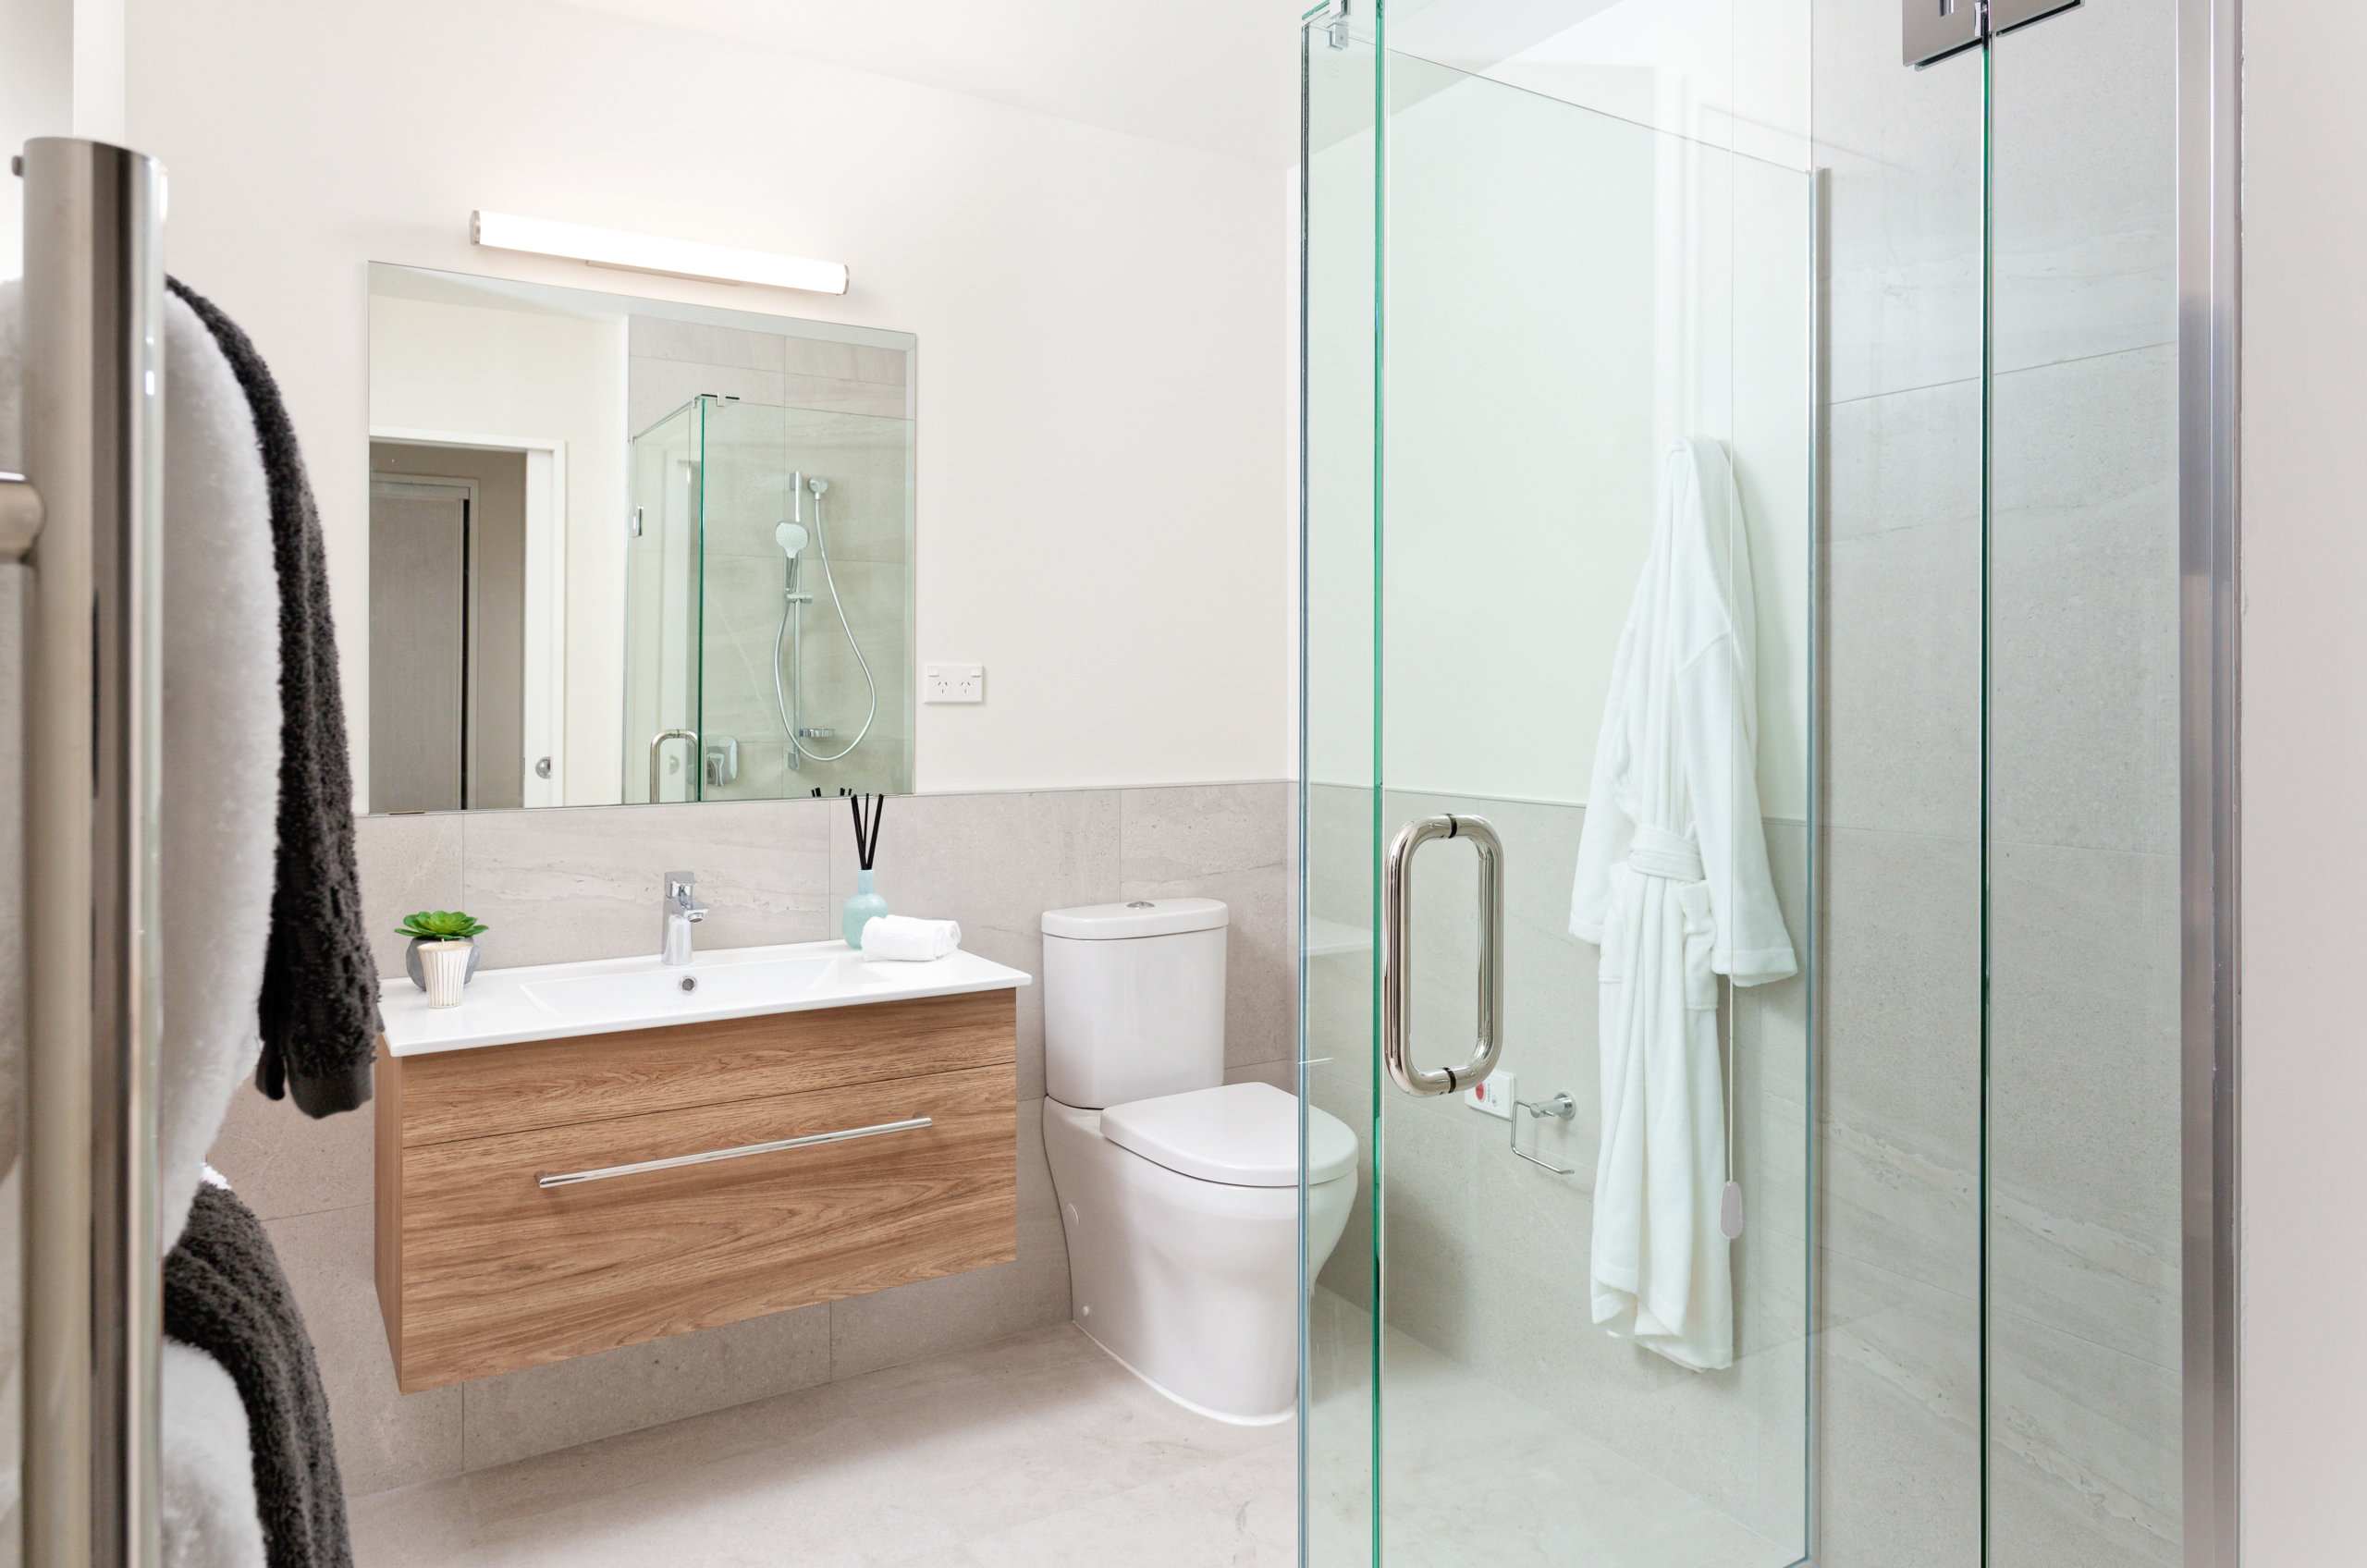 The Bayview bathroom with shower and toilet